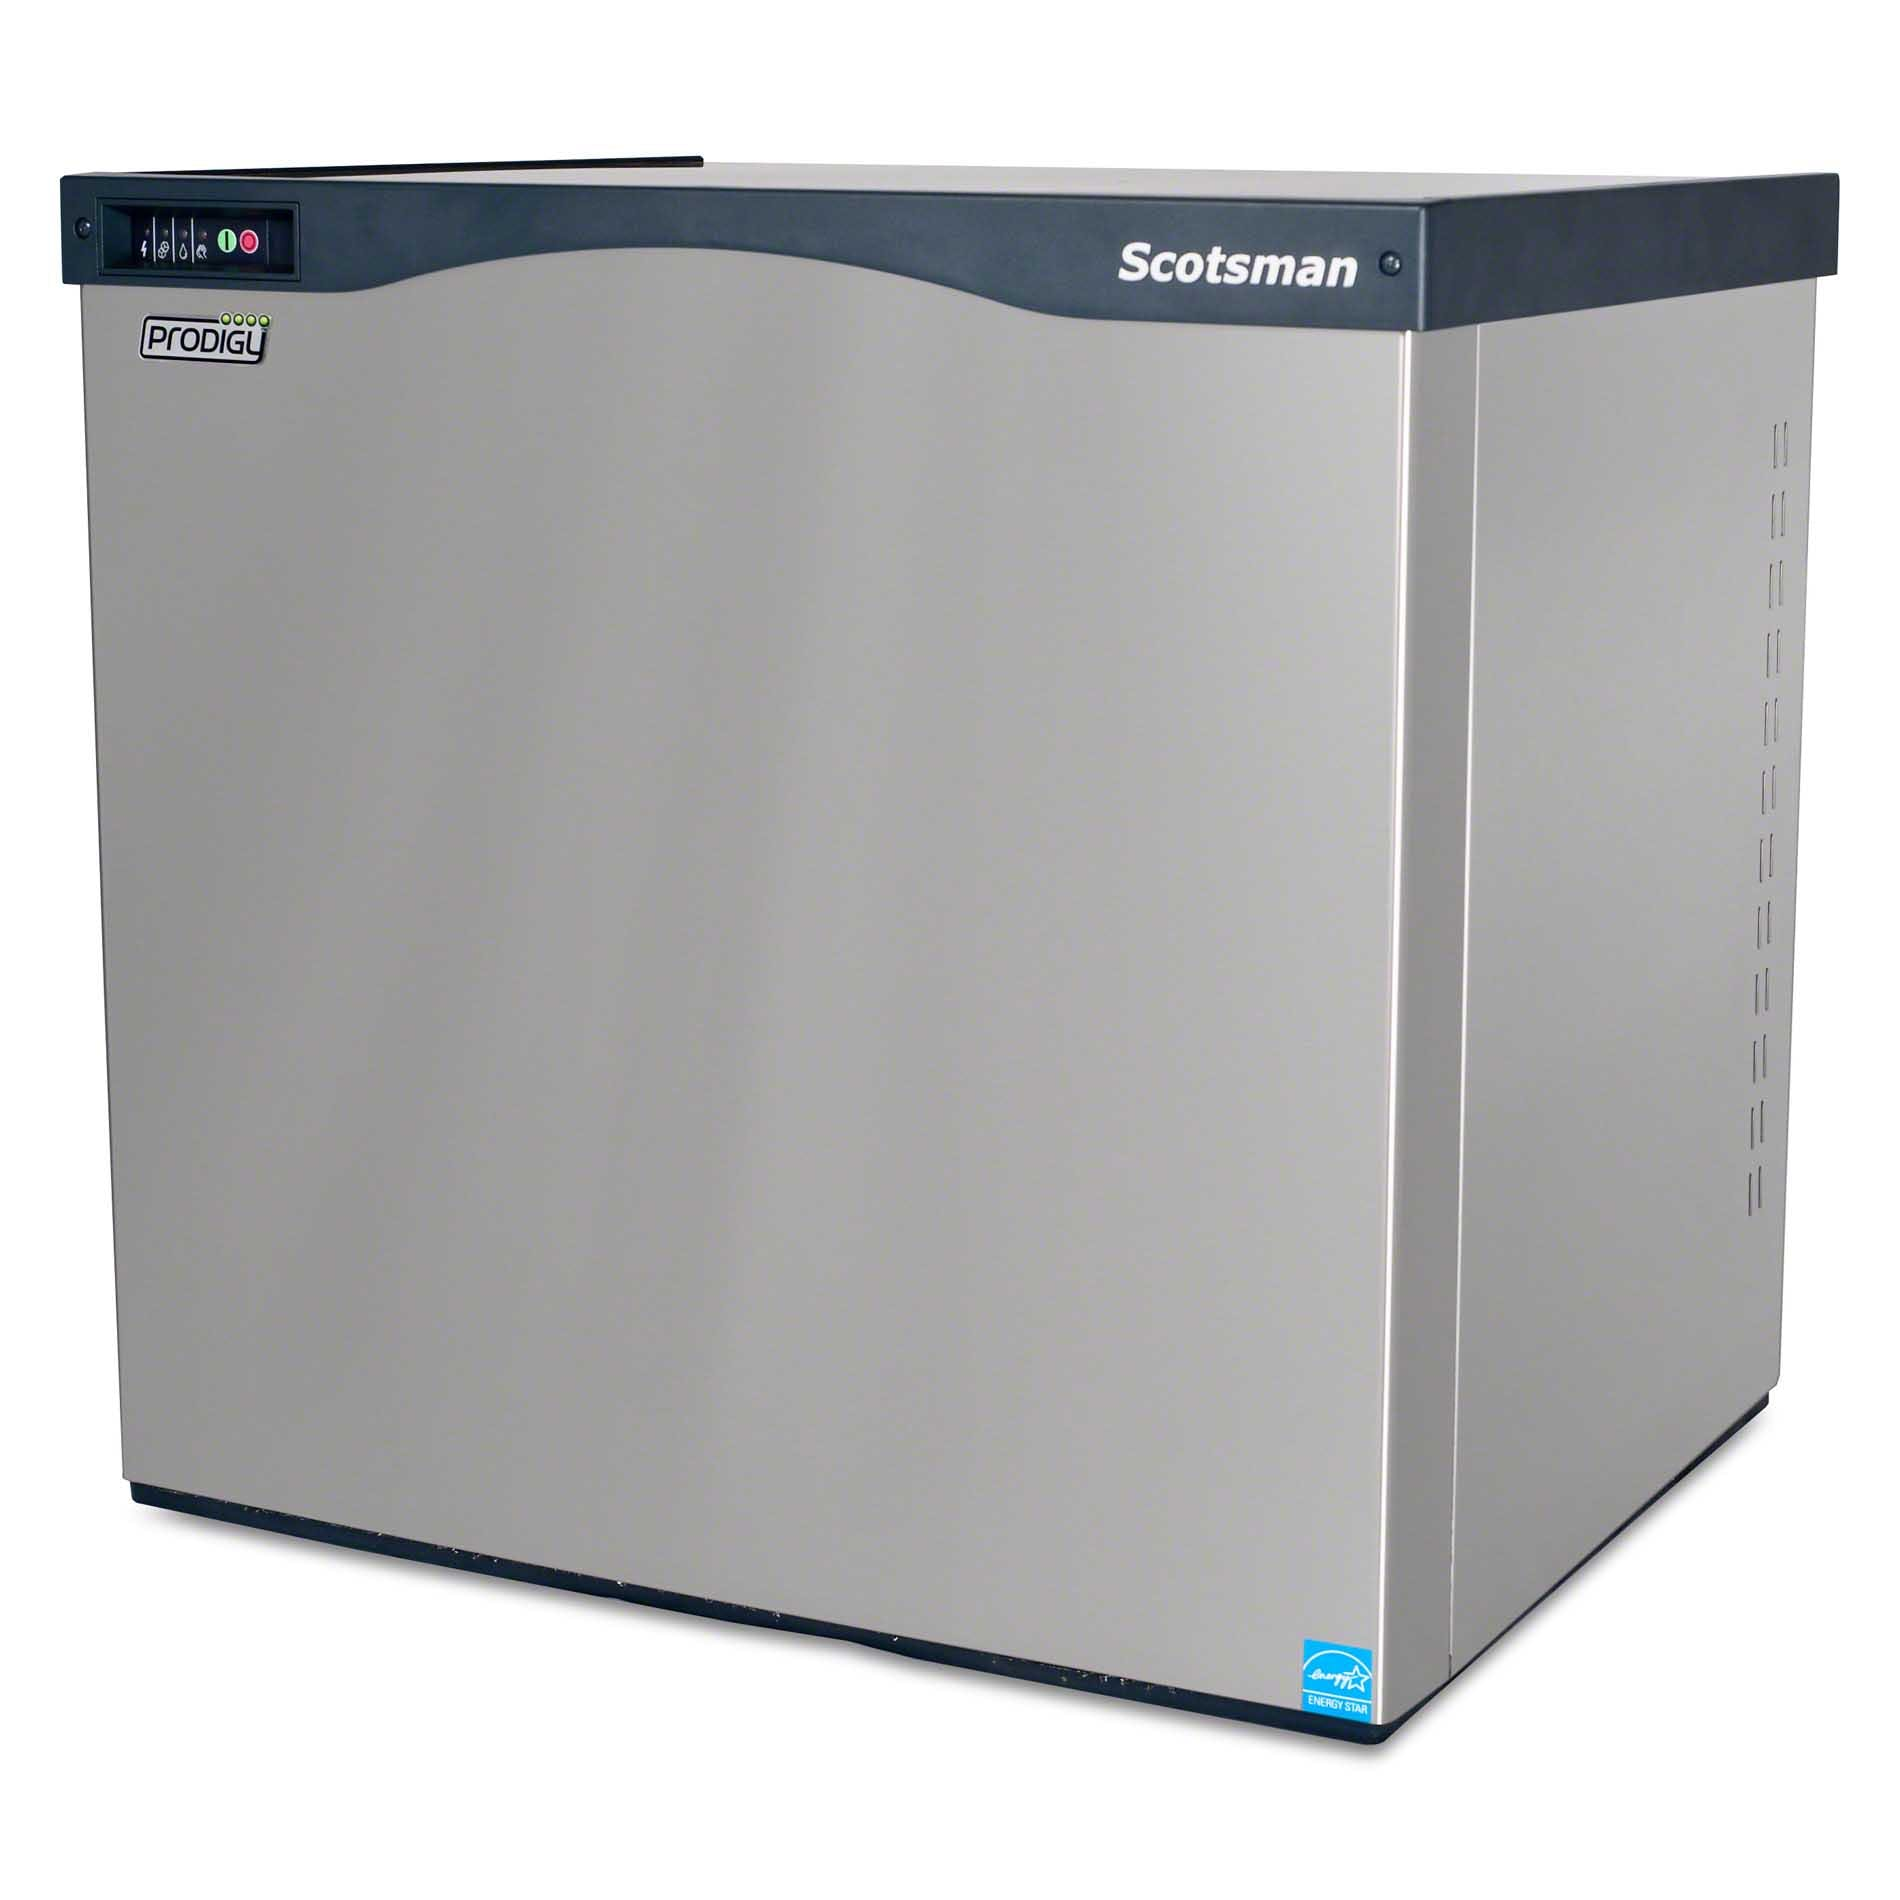 Scotsman - C0830MA-32A 905 lb Full Size Cube Ice Machine - Prodigy Series - sold by Food Service Warehouse